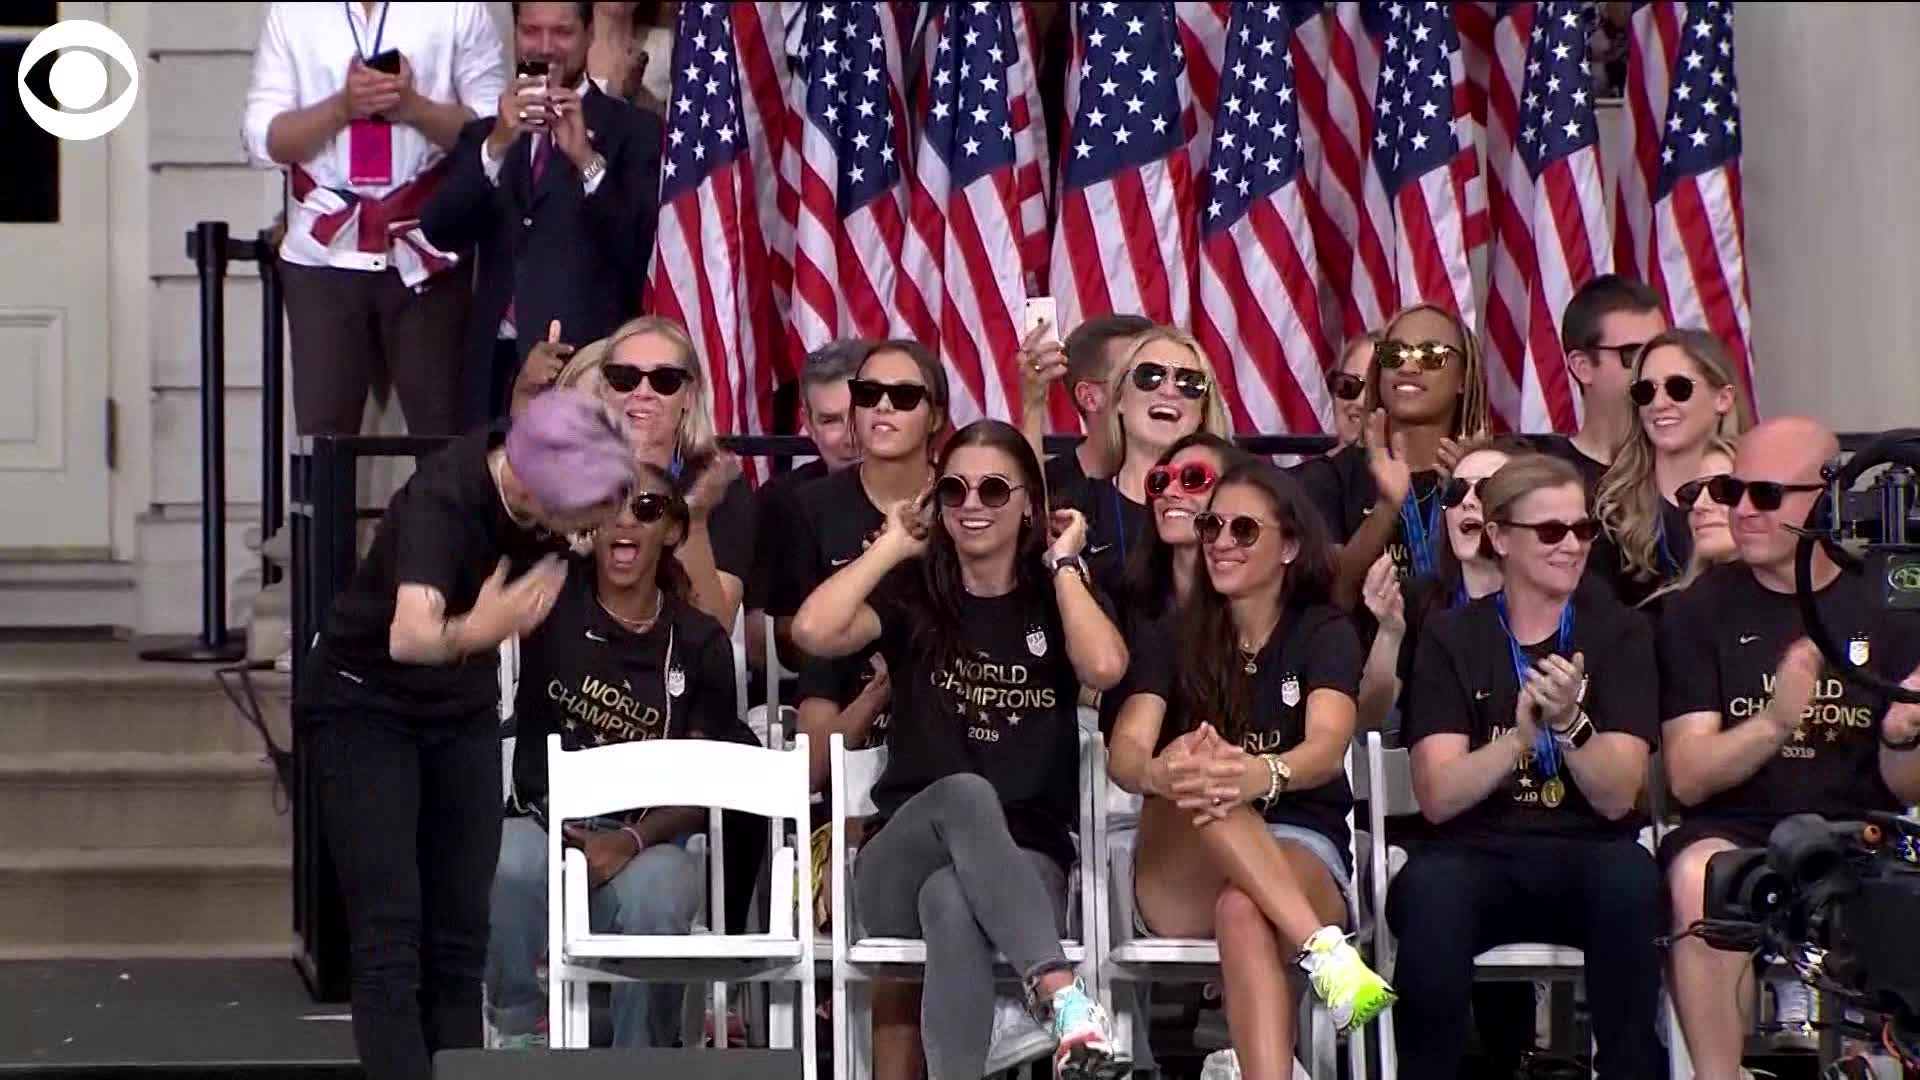 The head of U.S. Soccer mispronounced Megan Rapinoe's name at the World Cup trophy parade, and she danced it off